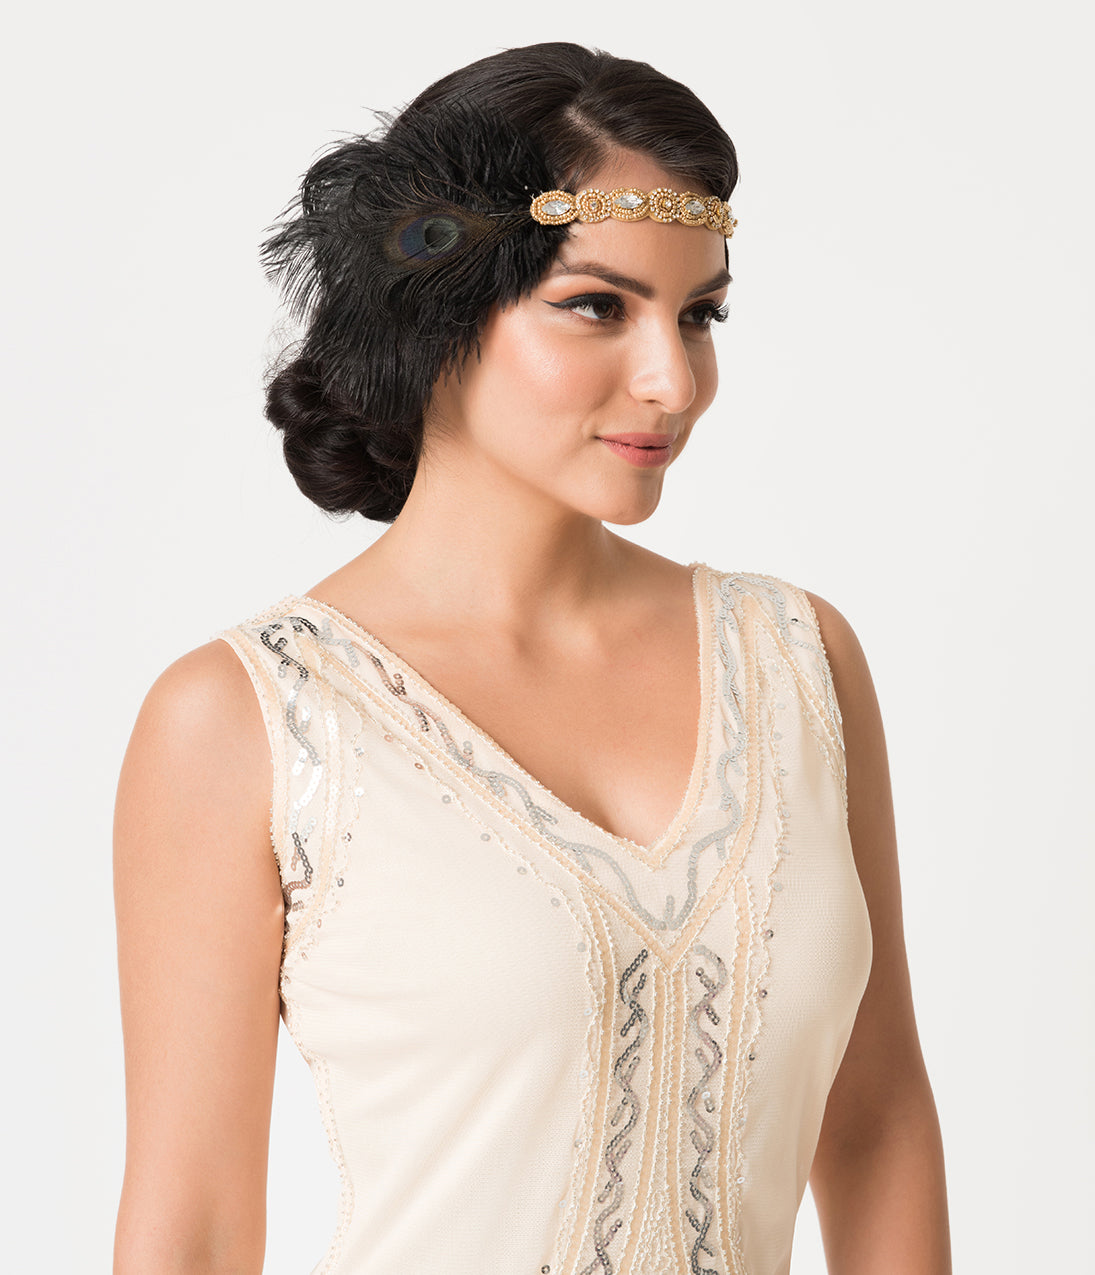 1920s Flapper Headband, Gatsby Headpiece, Wigs Unique Vintage Gold Beaded  Black Peacock Feather Flapper Headband $28.00 AT vintagedancer.com